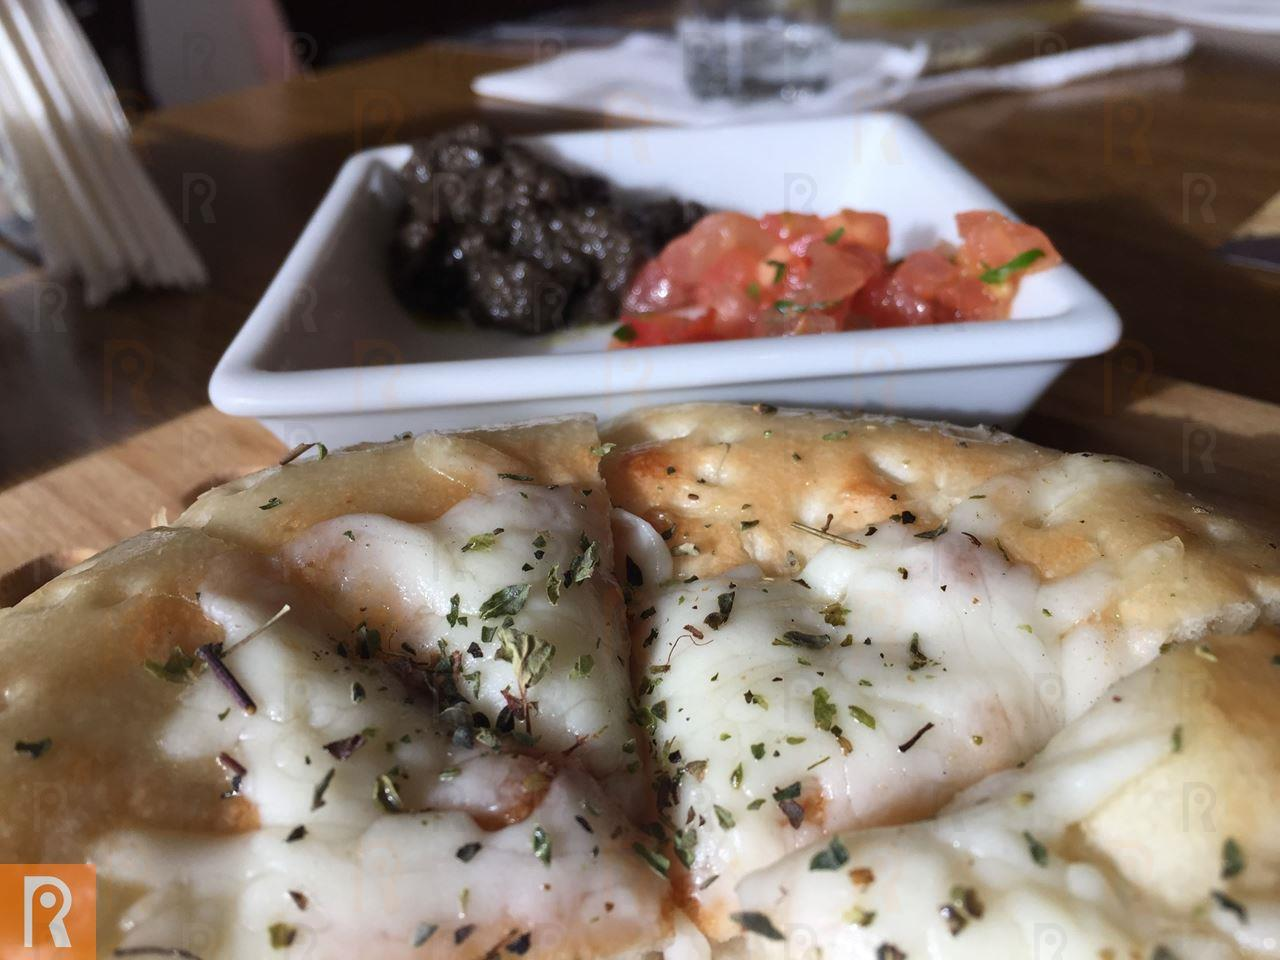 Bread with melted cheese along with tomatoes and olives